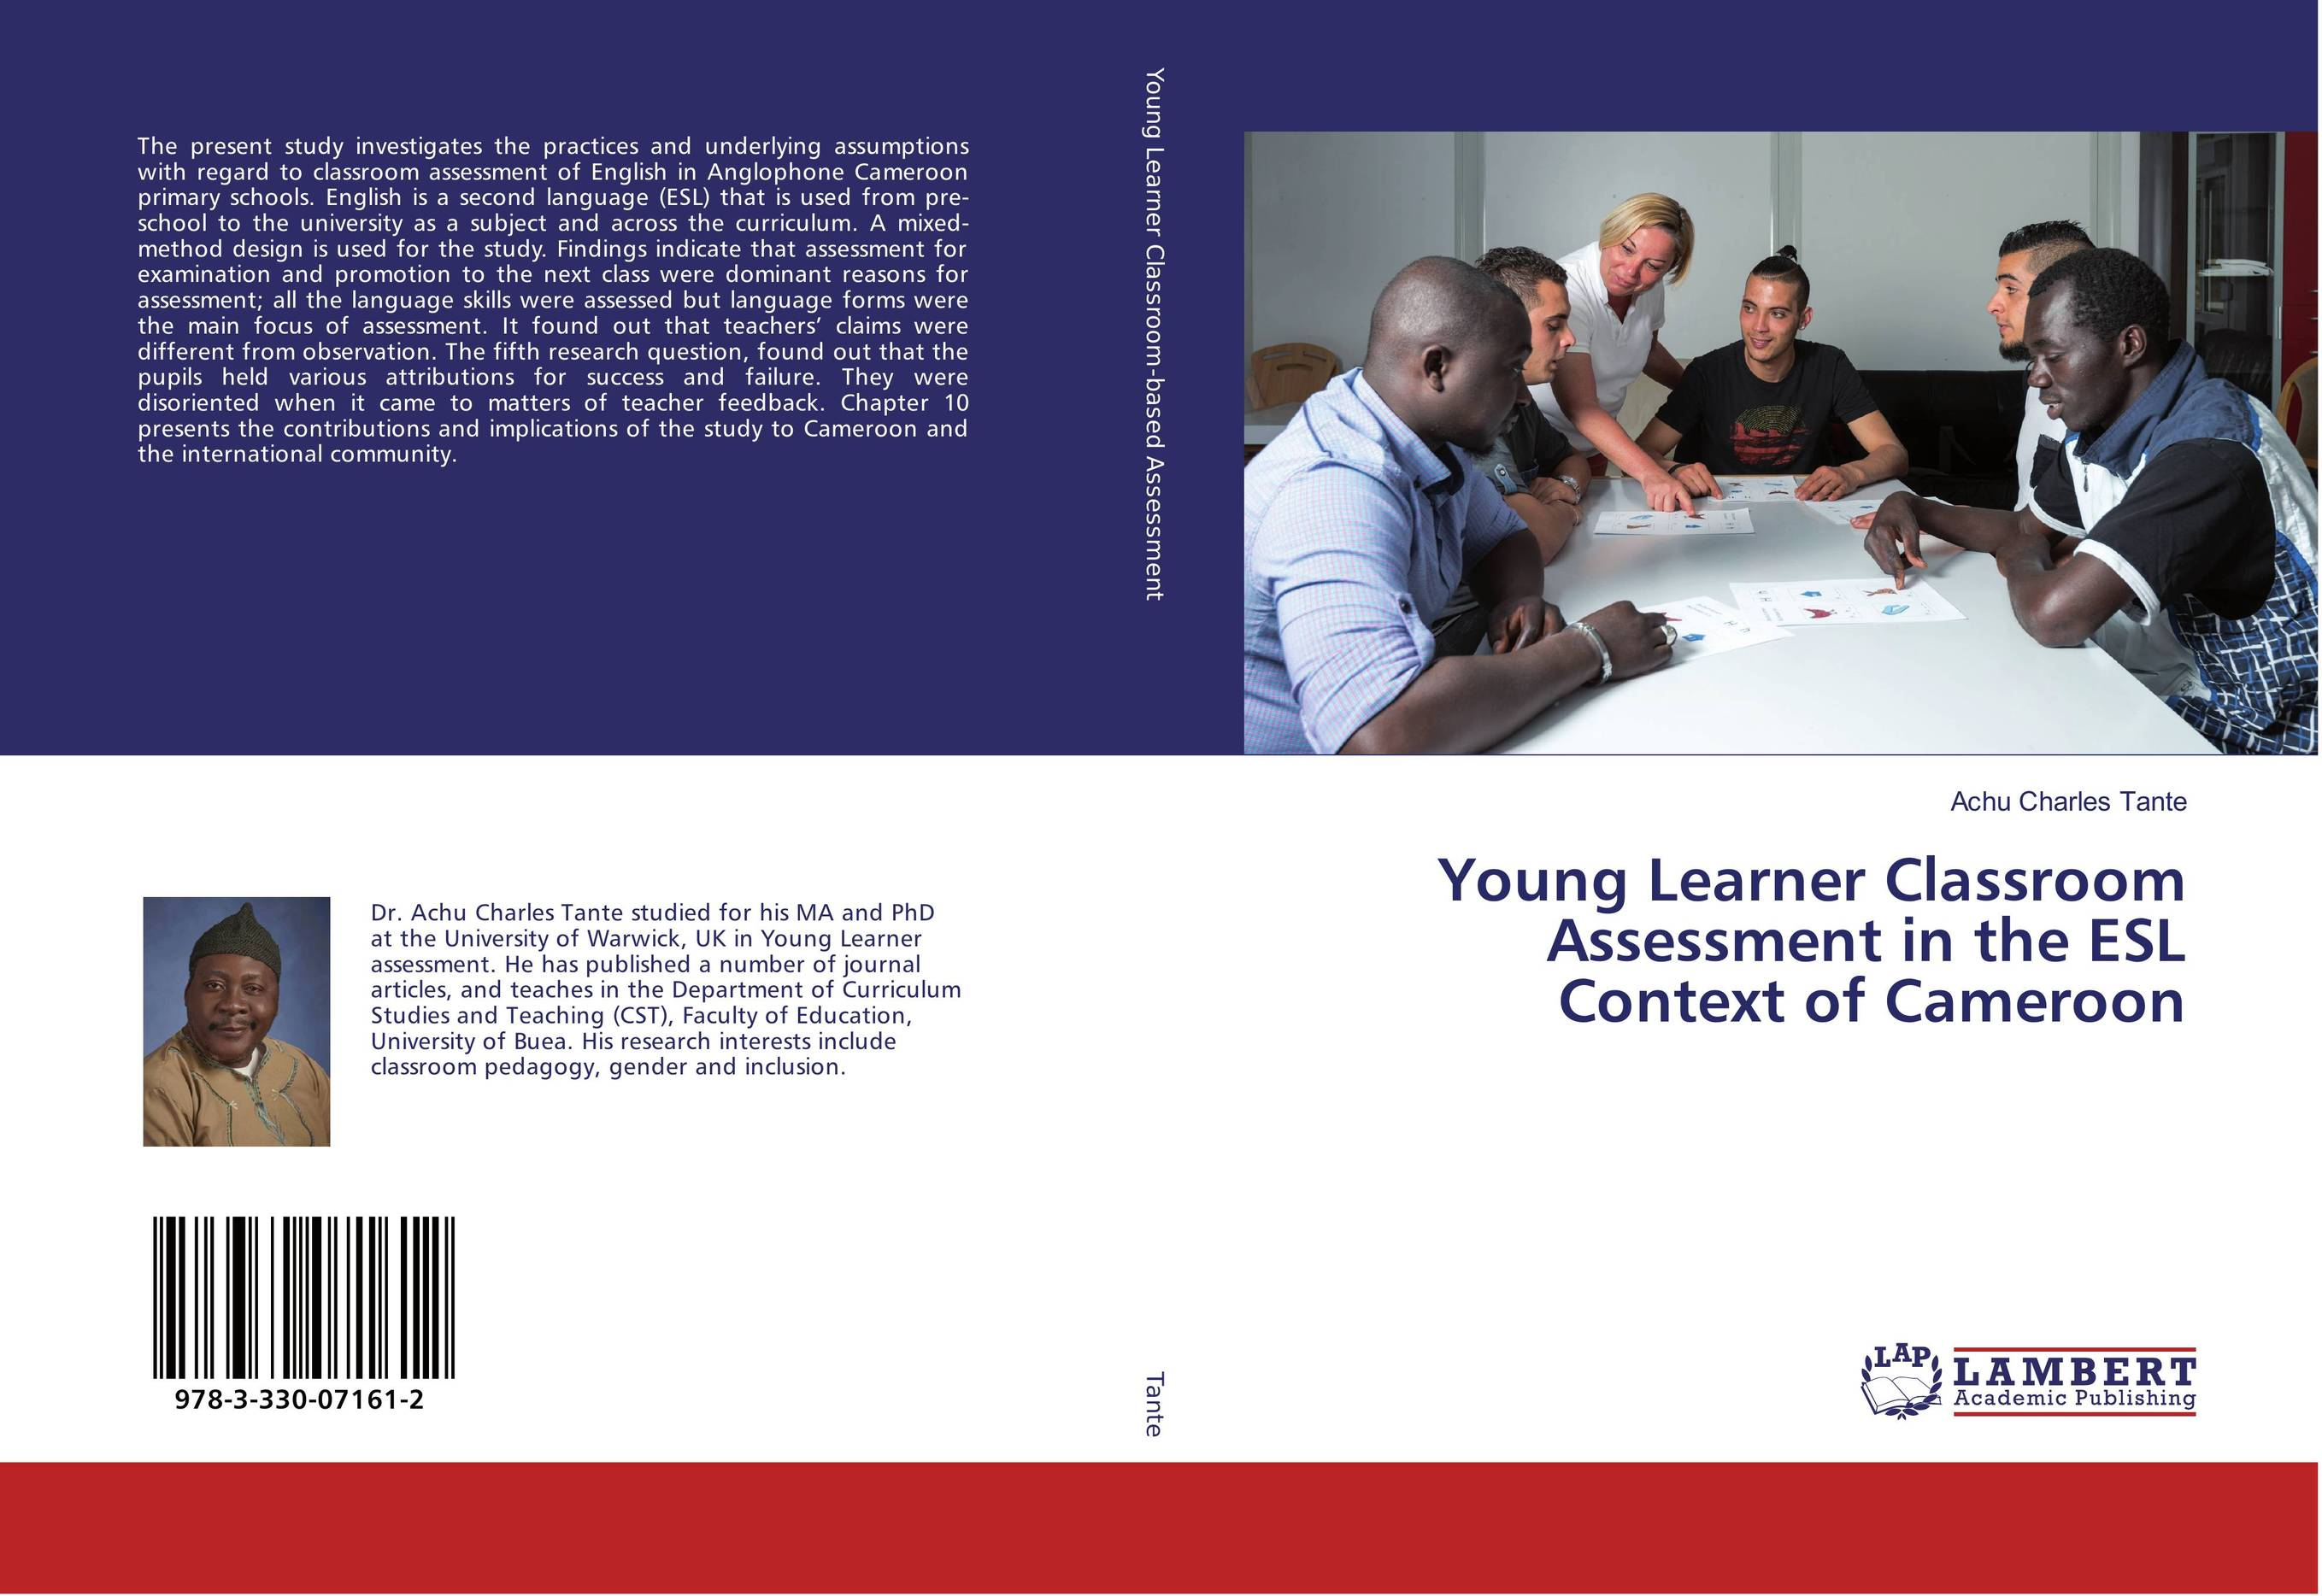 9783330071612 Young Learner Classroom Assessment in the ESL Contt of Cameroon